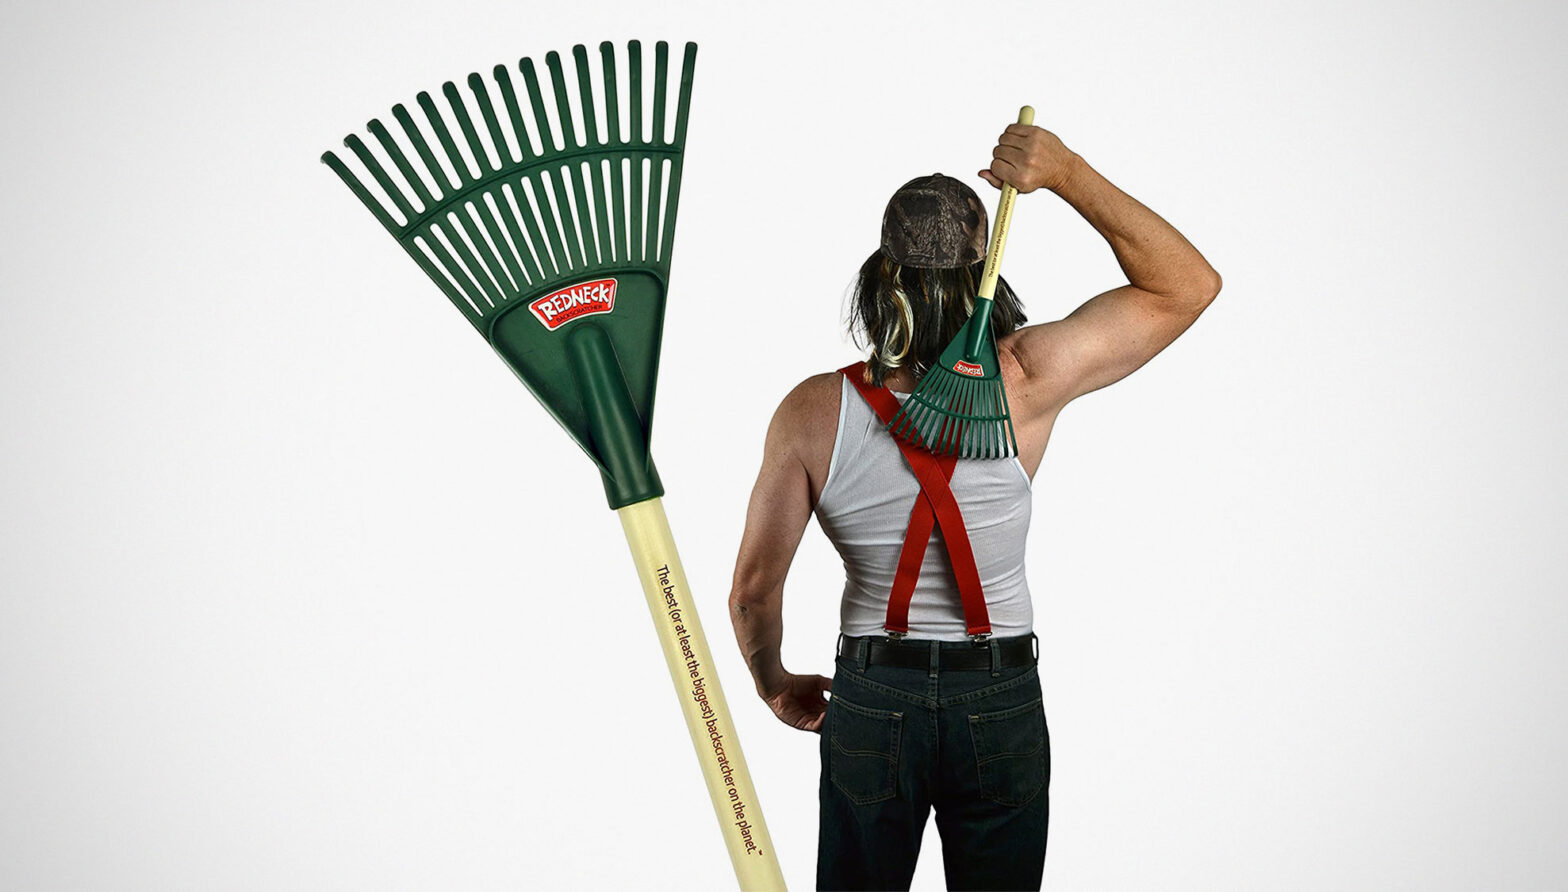 Redneck Backscratcher Garden Rake Backscratcher